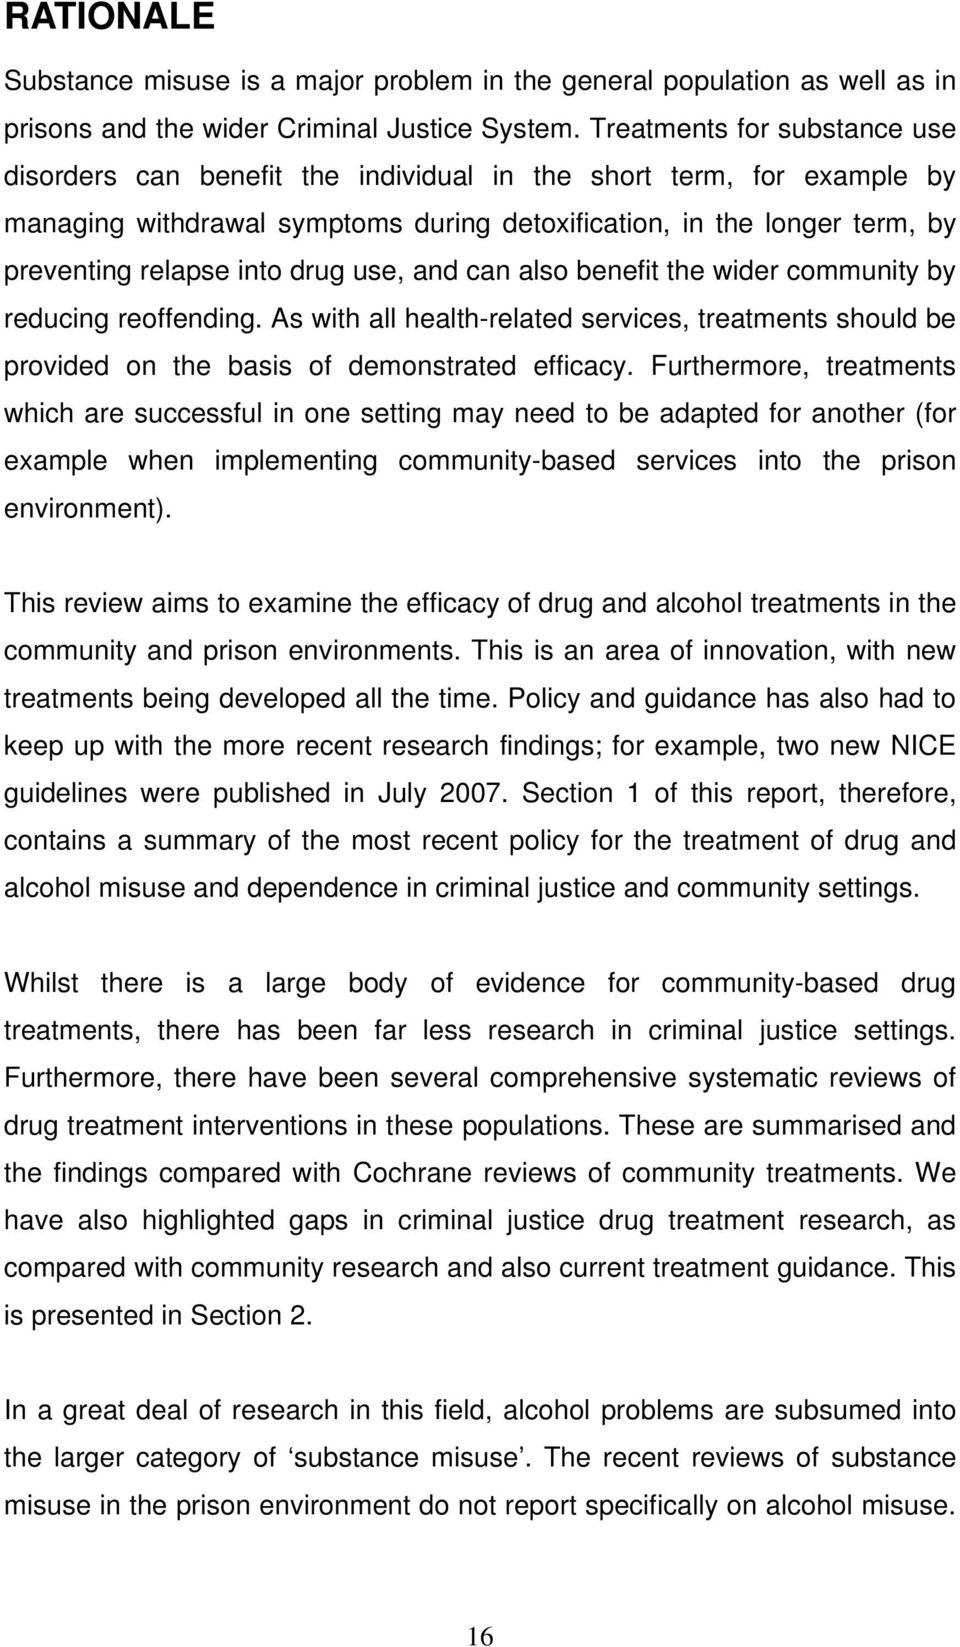 drug use, and can also benefit the wider community by reducing reoffending. As with all health-related services, treatments should be provided on the basis of demonstrated efficacy.